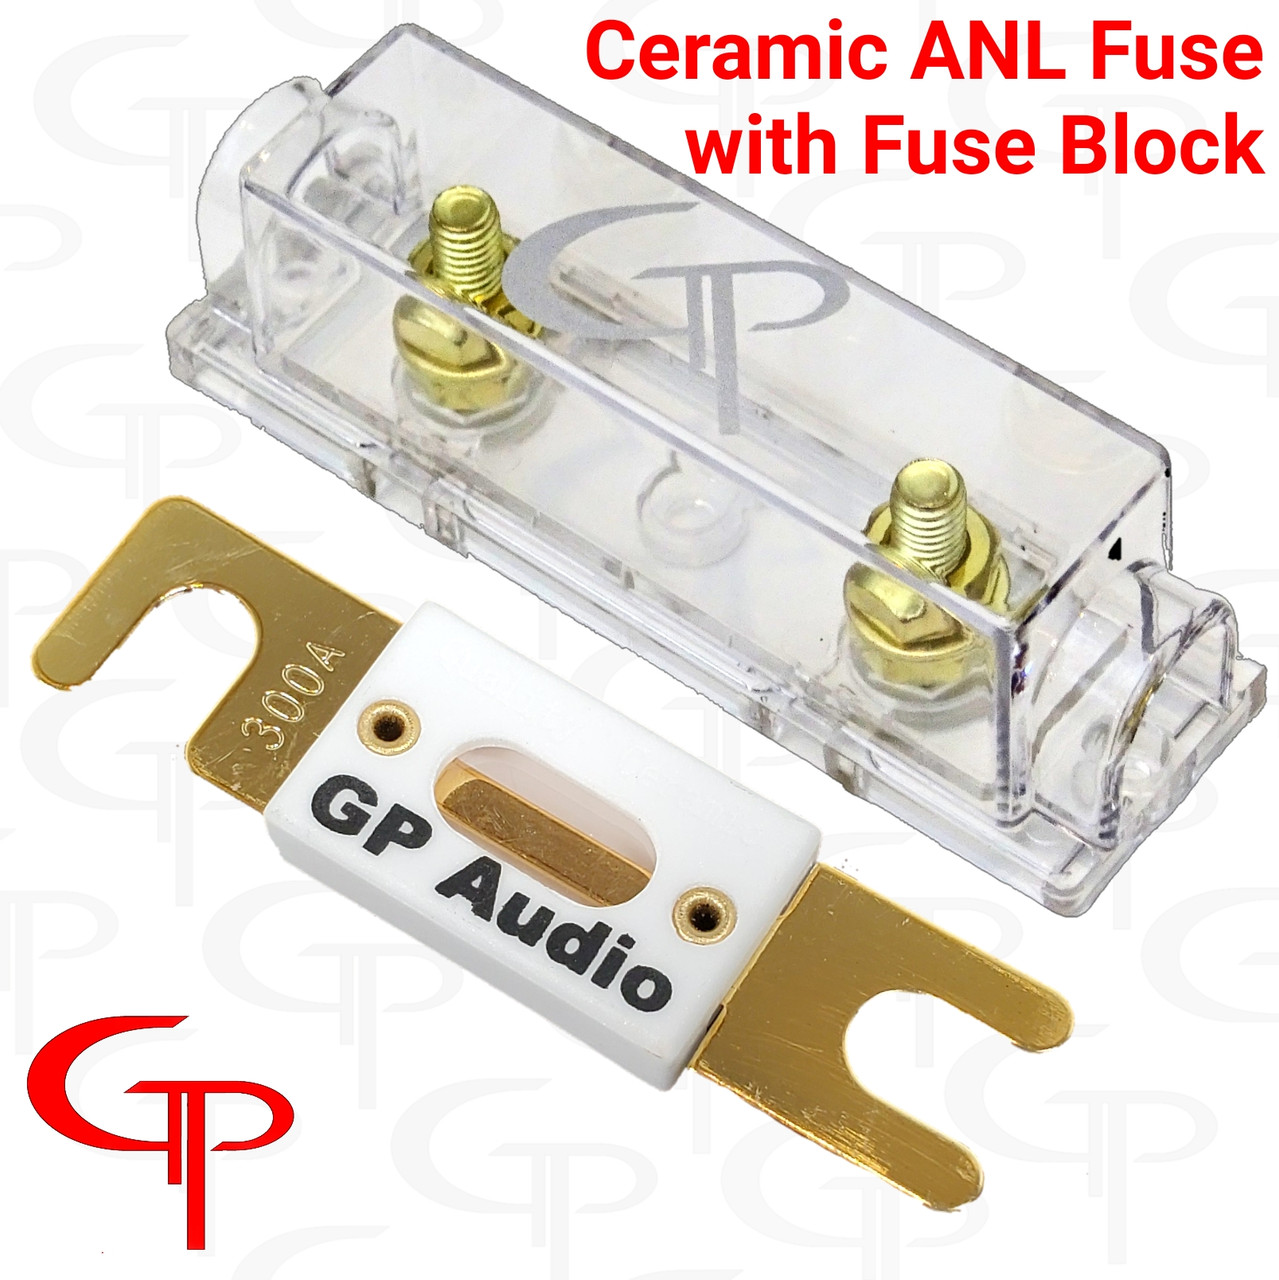 GP ANL FUSE BLOCK  & CERAMIC FUSE